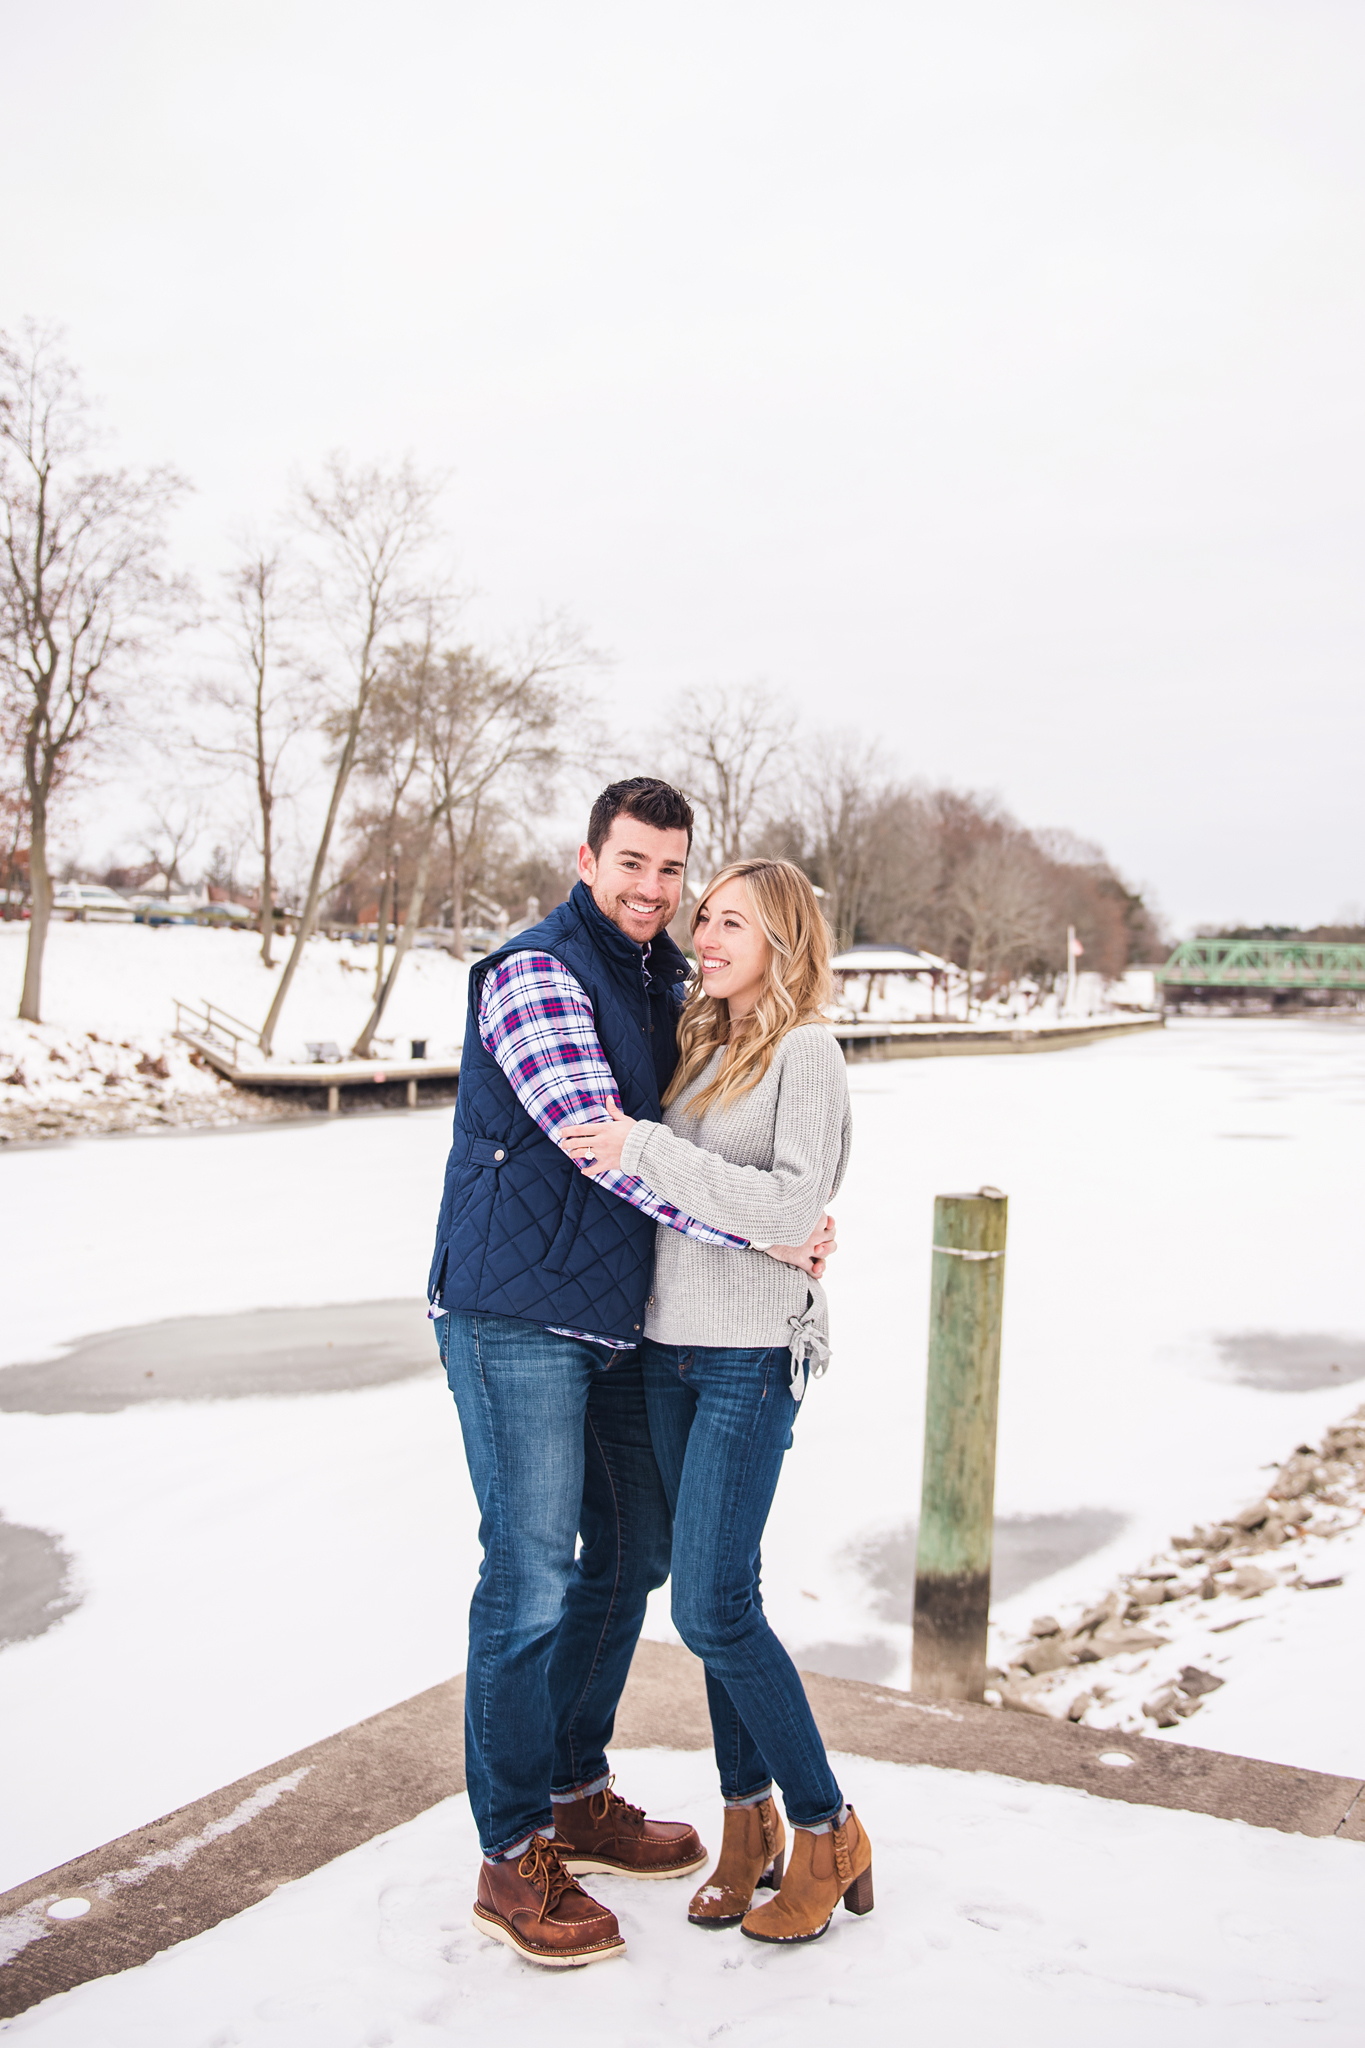 Schoen_Place_Rochester_Engagement_Session_JILL_STUDIO_Rochester_NY_Photographer_DSC_1164.jpg